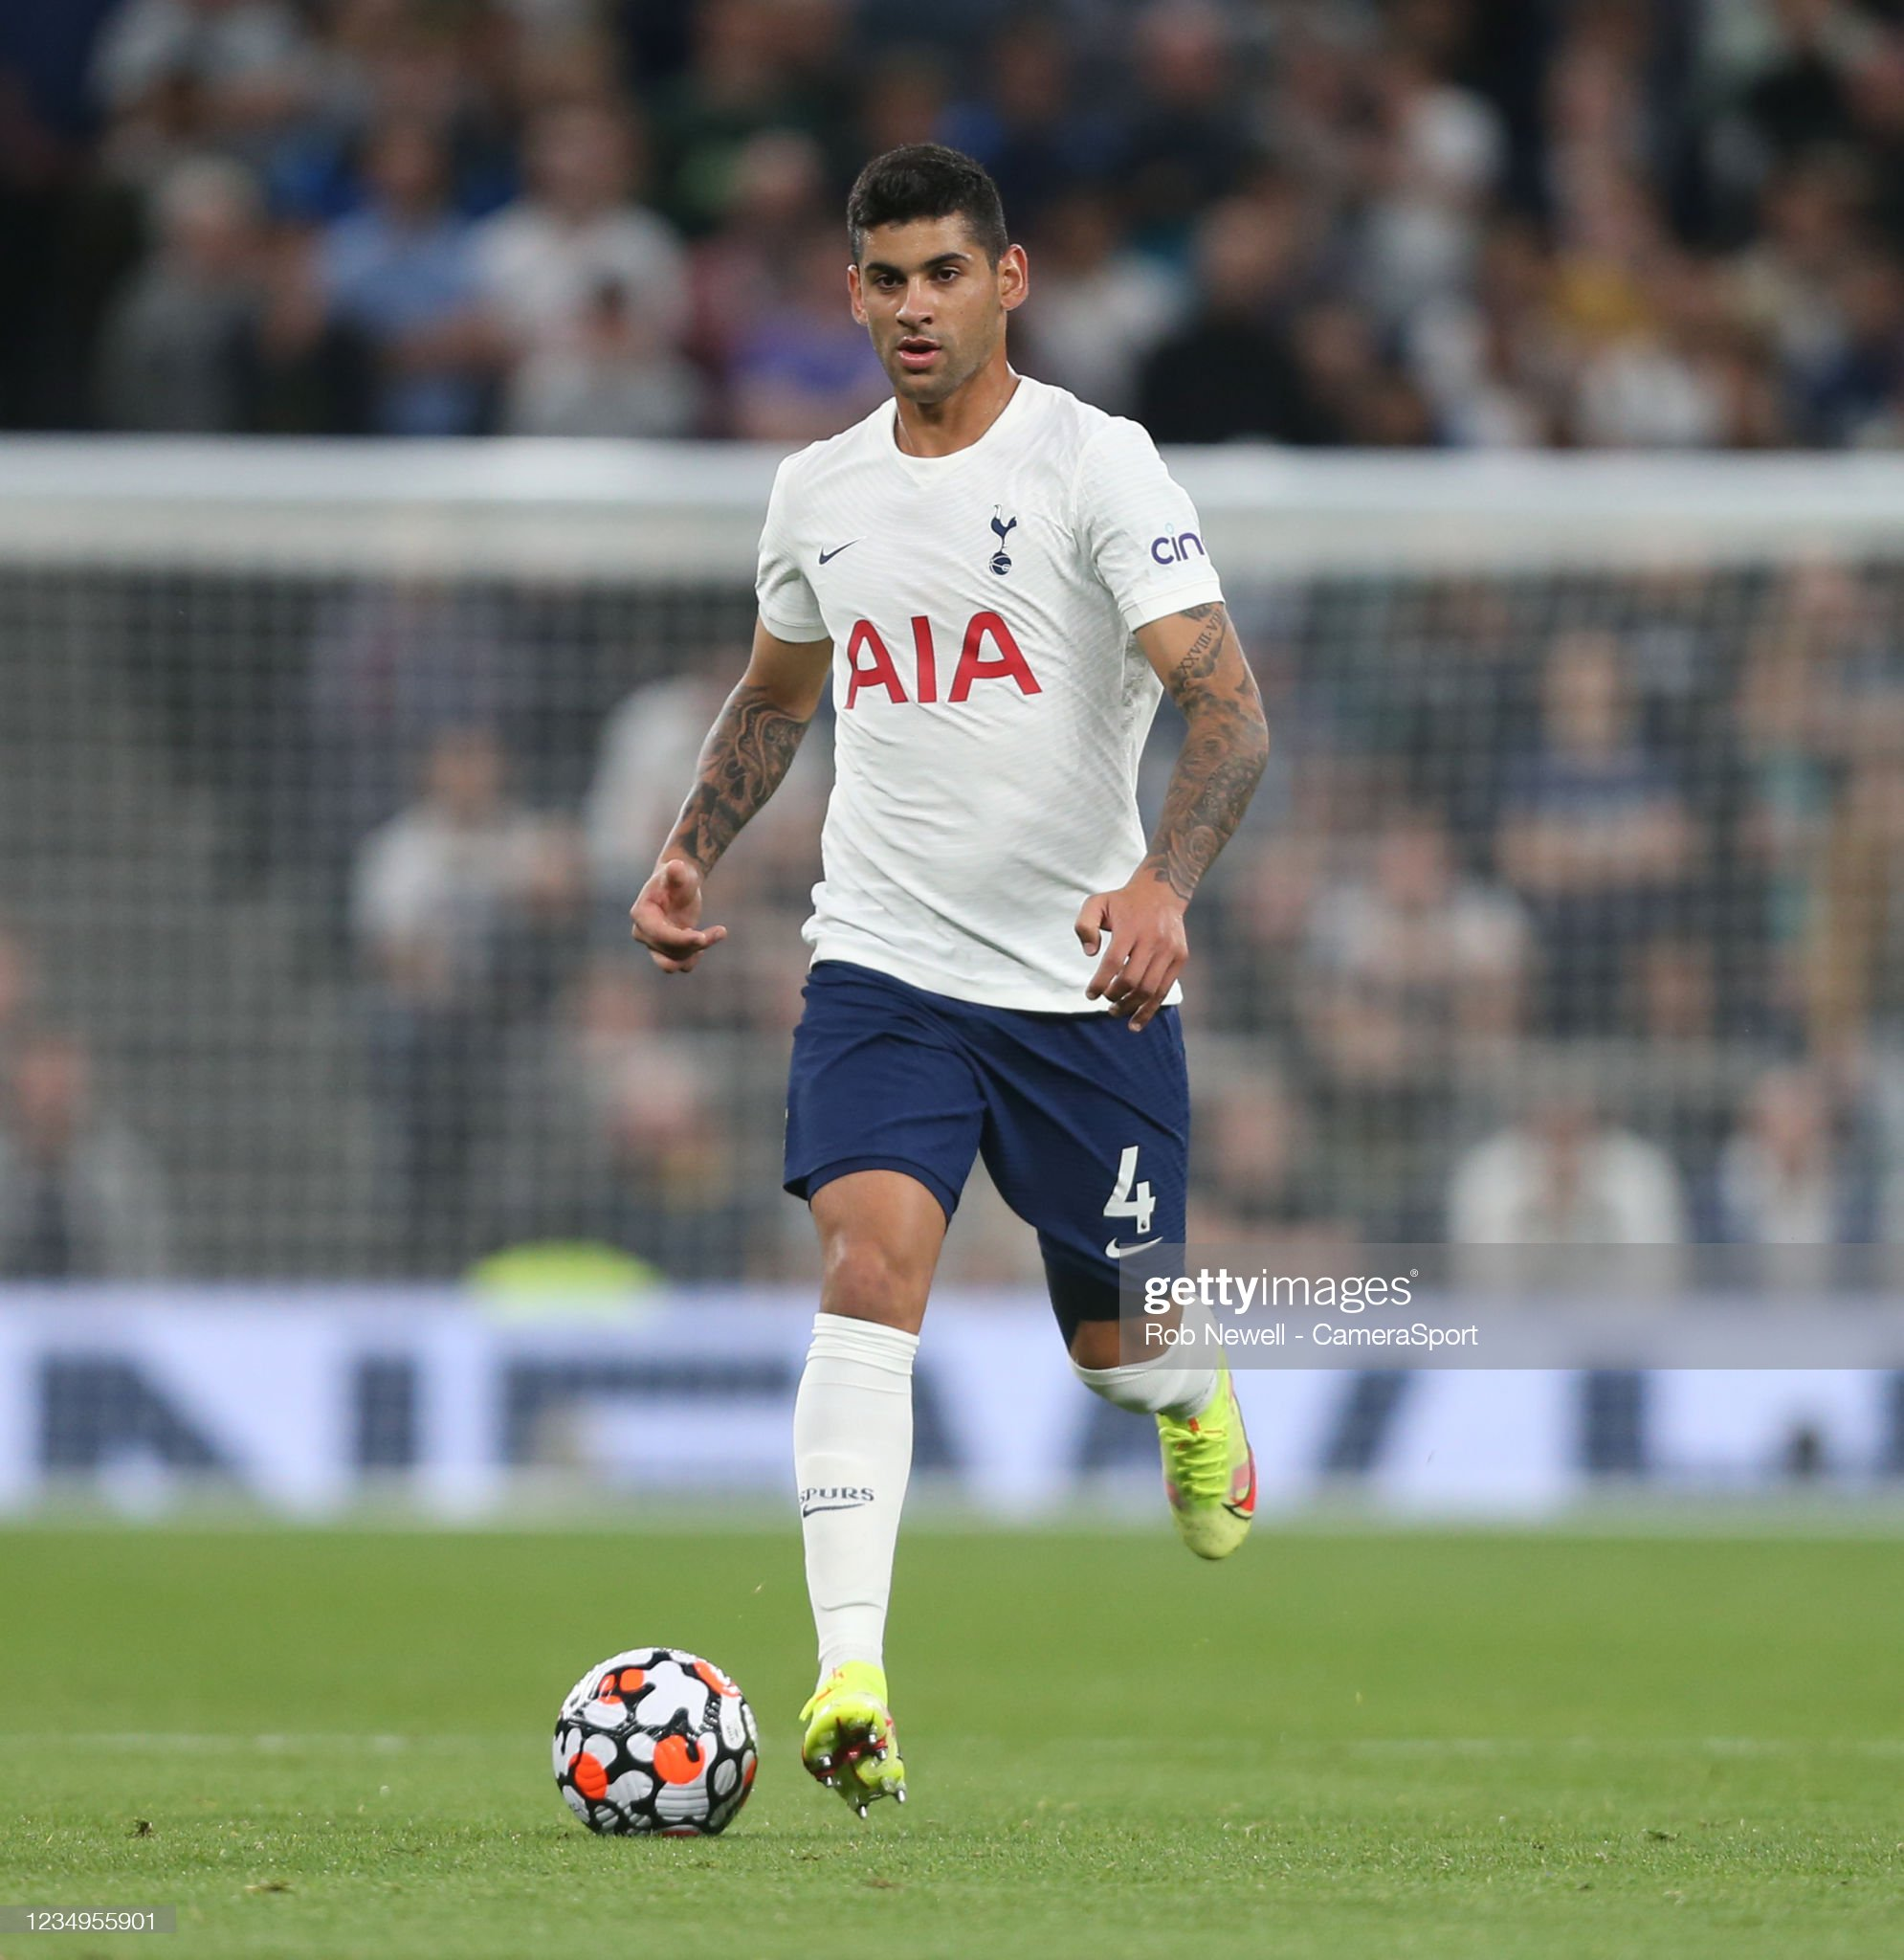 IMAGE(https://media.gettyimages.com/photos/tottenham-hotspurs-cristian-romero-during-the-uefa-conference-league-picture-id1234955901?s=2048x2048)